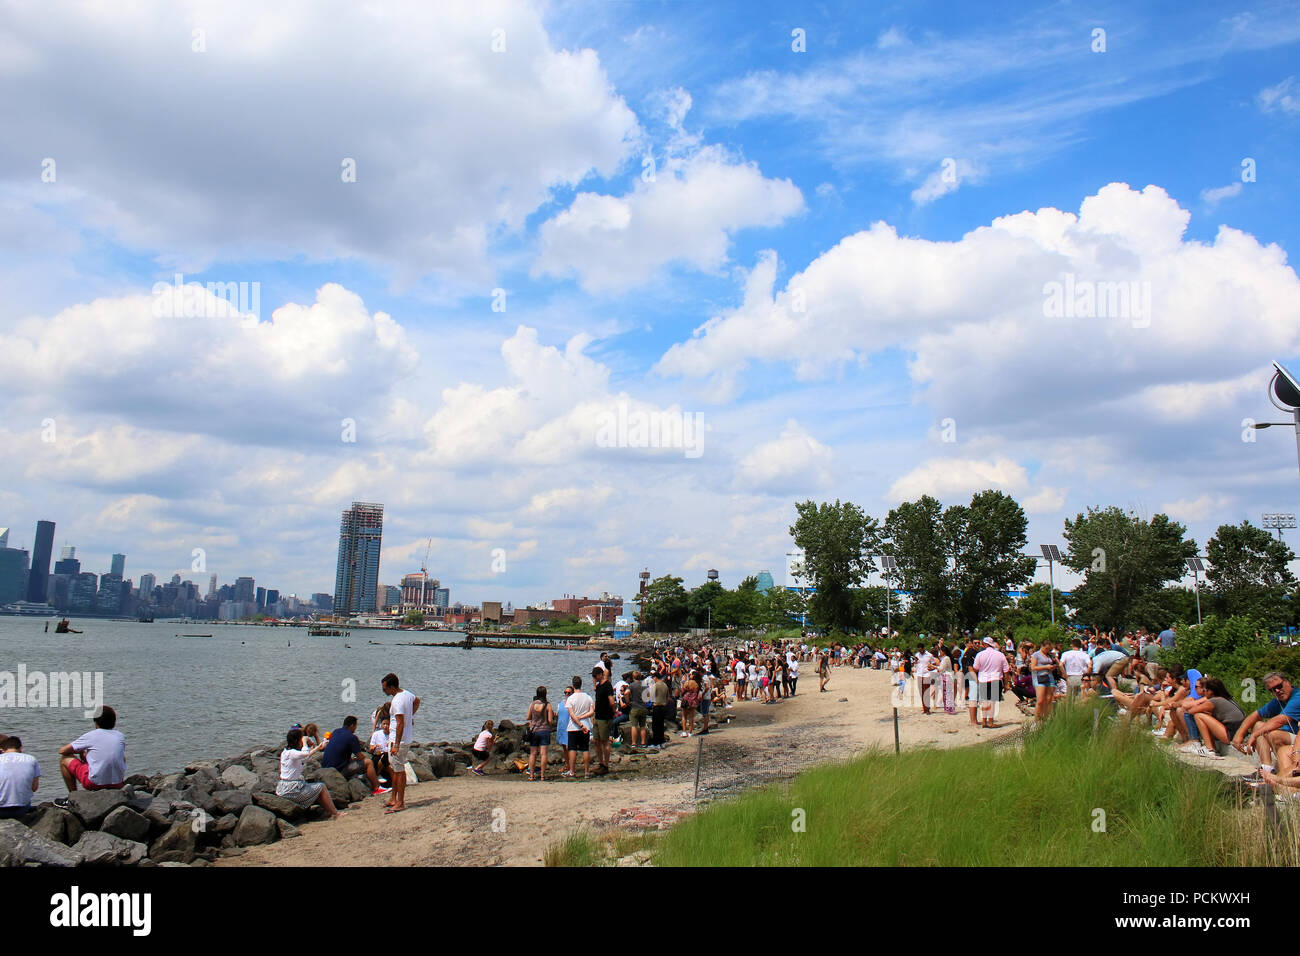 People resting on an East River Park beach during Smorgasburg in Williamsburg, Brooklyn on JULY 8th, 2017 in New York, USA. (Photo by Wojciech Migda) Stock Photo